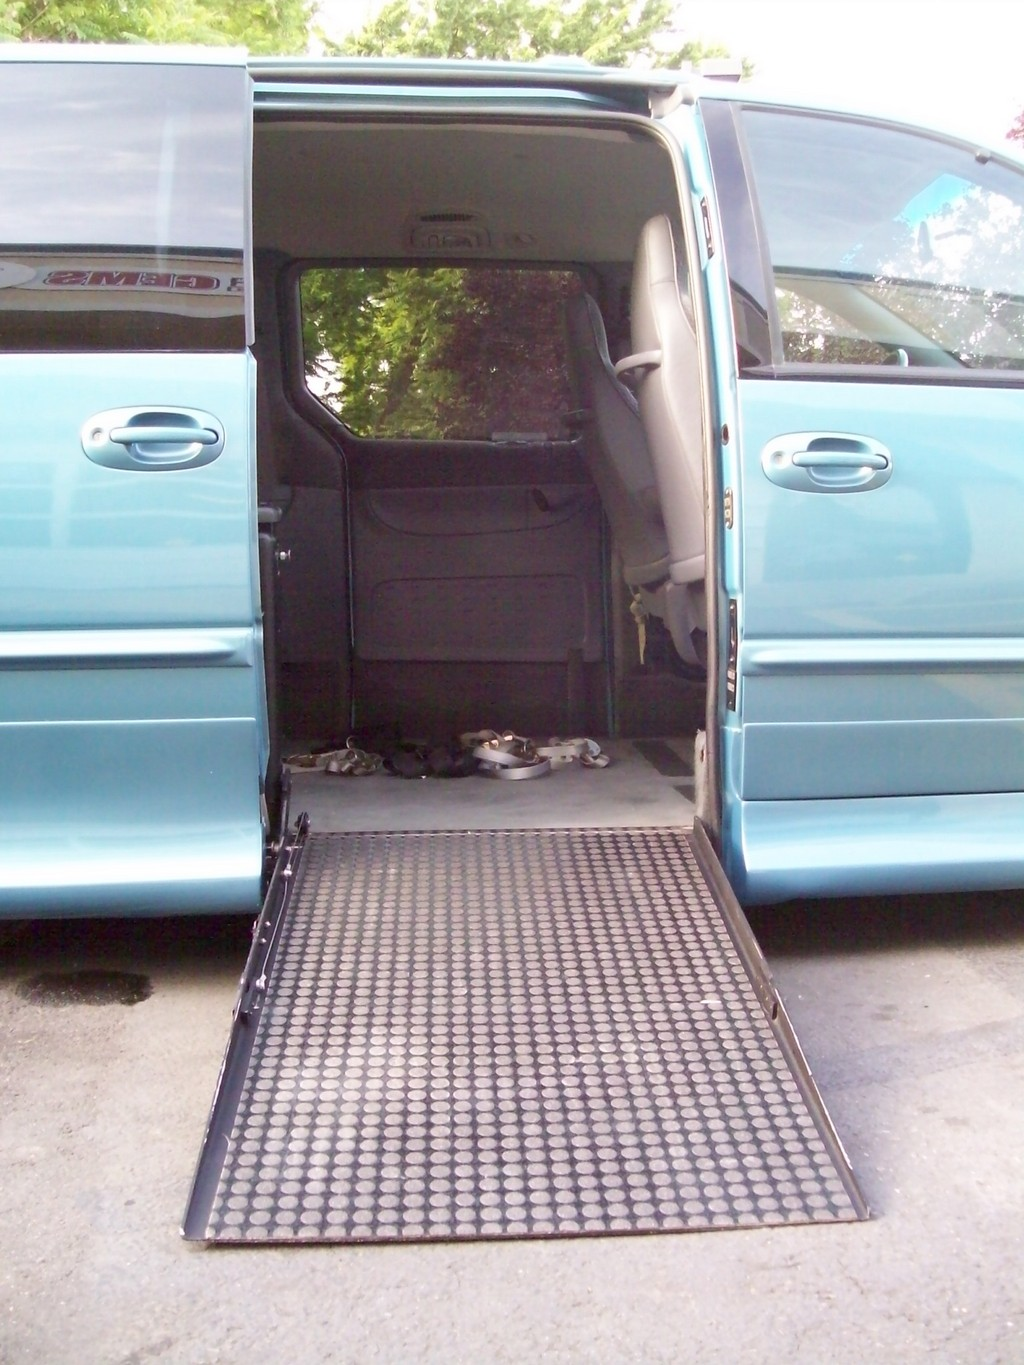 repairable van wheelchair, van wheelchair and person lifts, mini van wheel chair ready, free wheelchair van